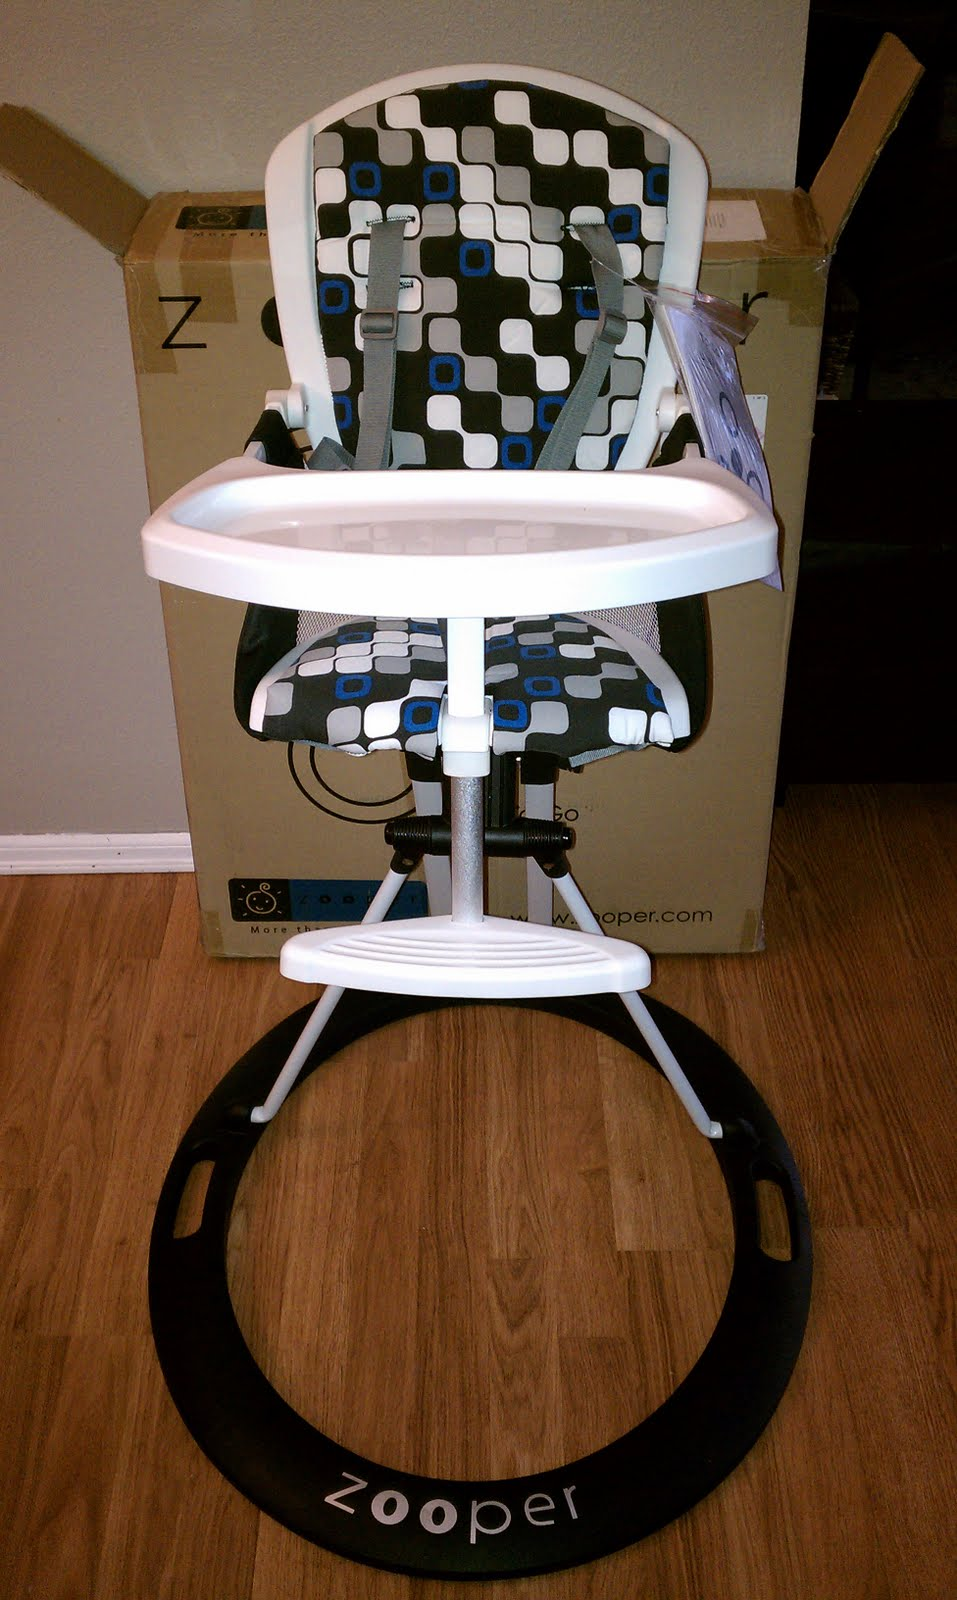 Zooper High Chair Review   Frugal Family Tree We are now fans of the Zooper brand  They make several types of strollers  including a two seated one  You can learn more about their products by  following